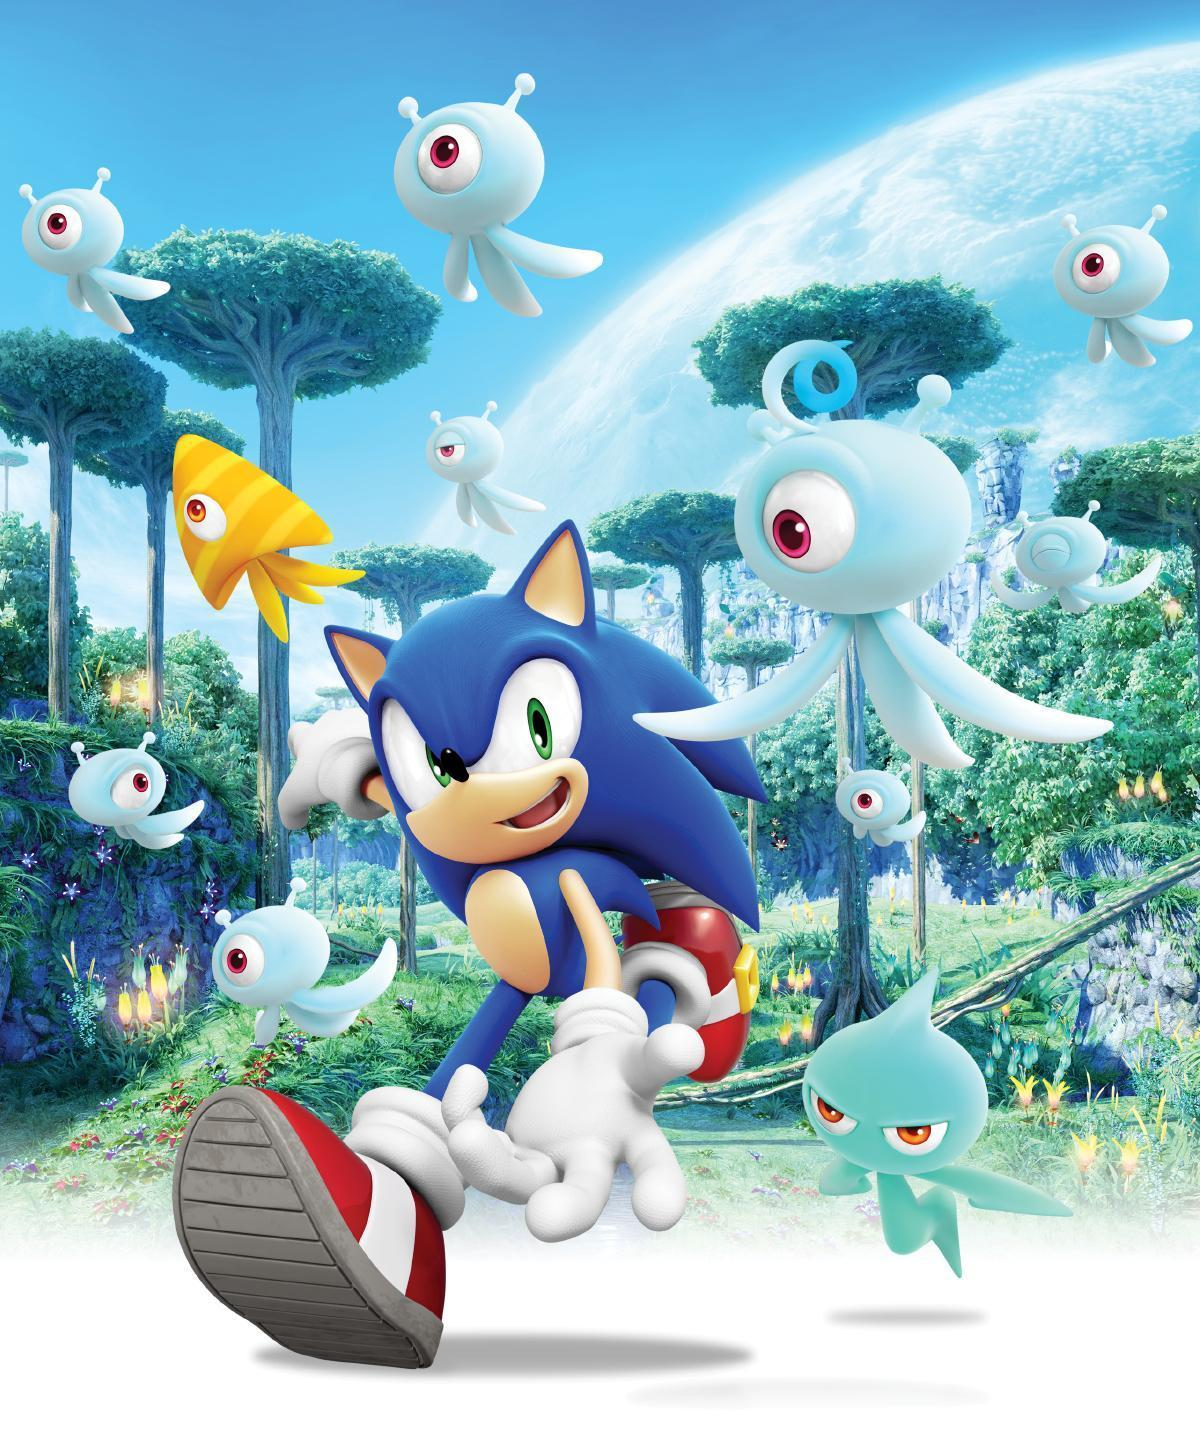 Sonic The Hedgehog Wallpapers 2015